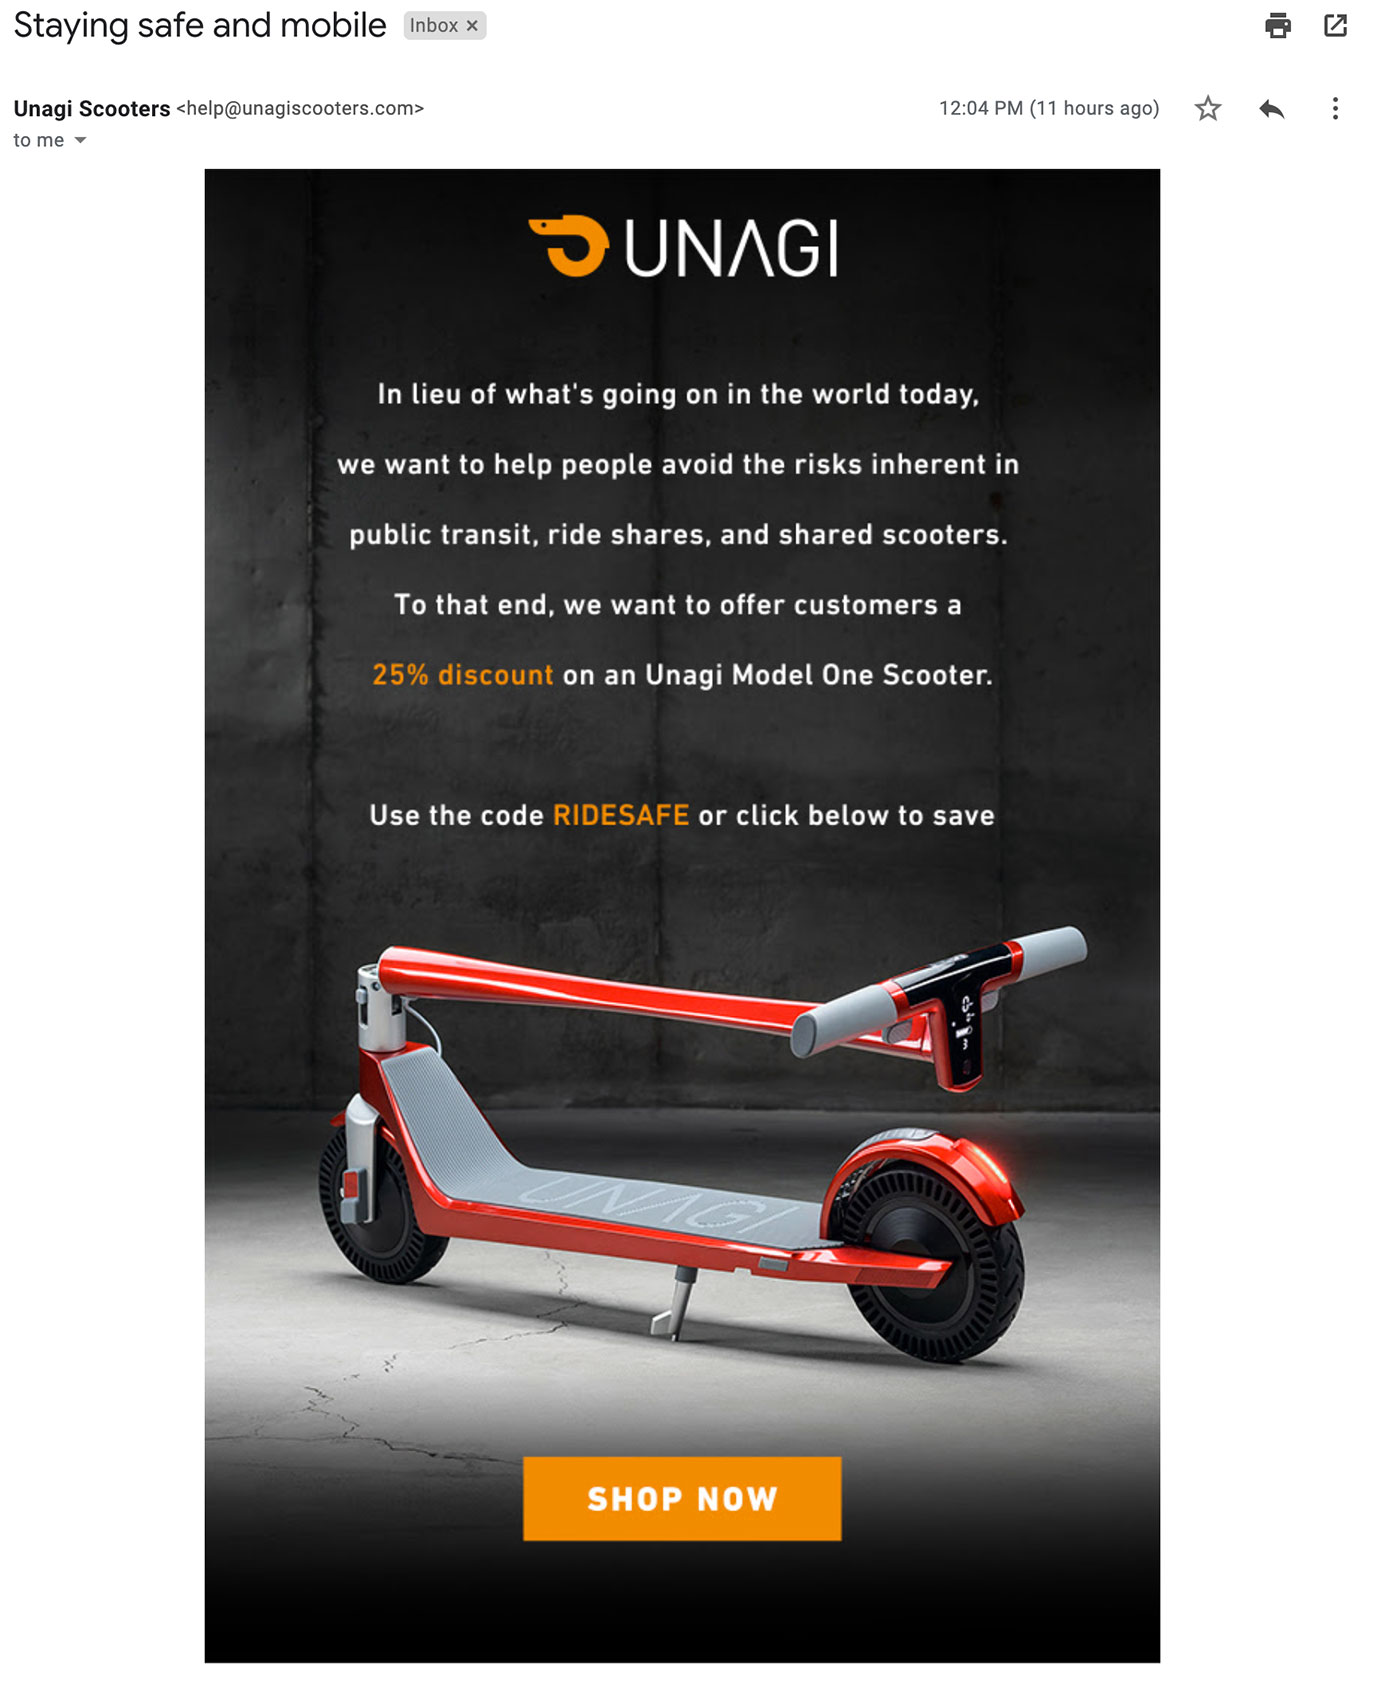 Unagi Scooters with a suggestion for alternative transportation.